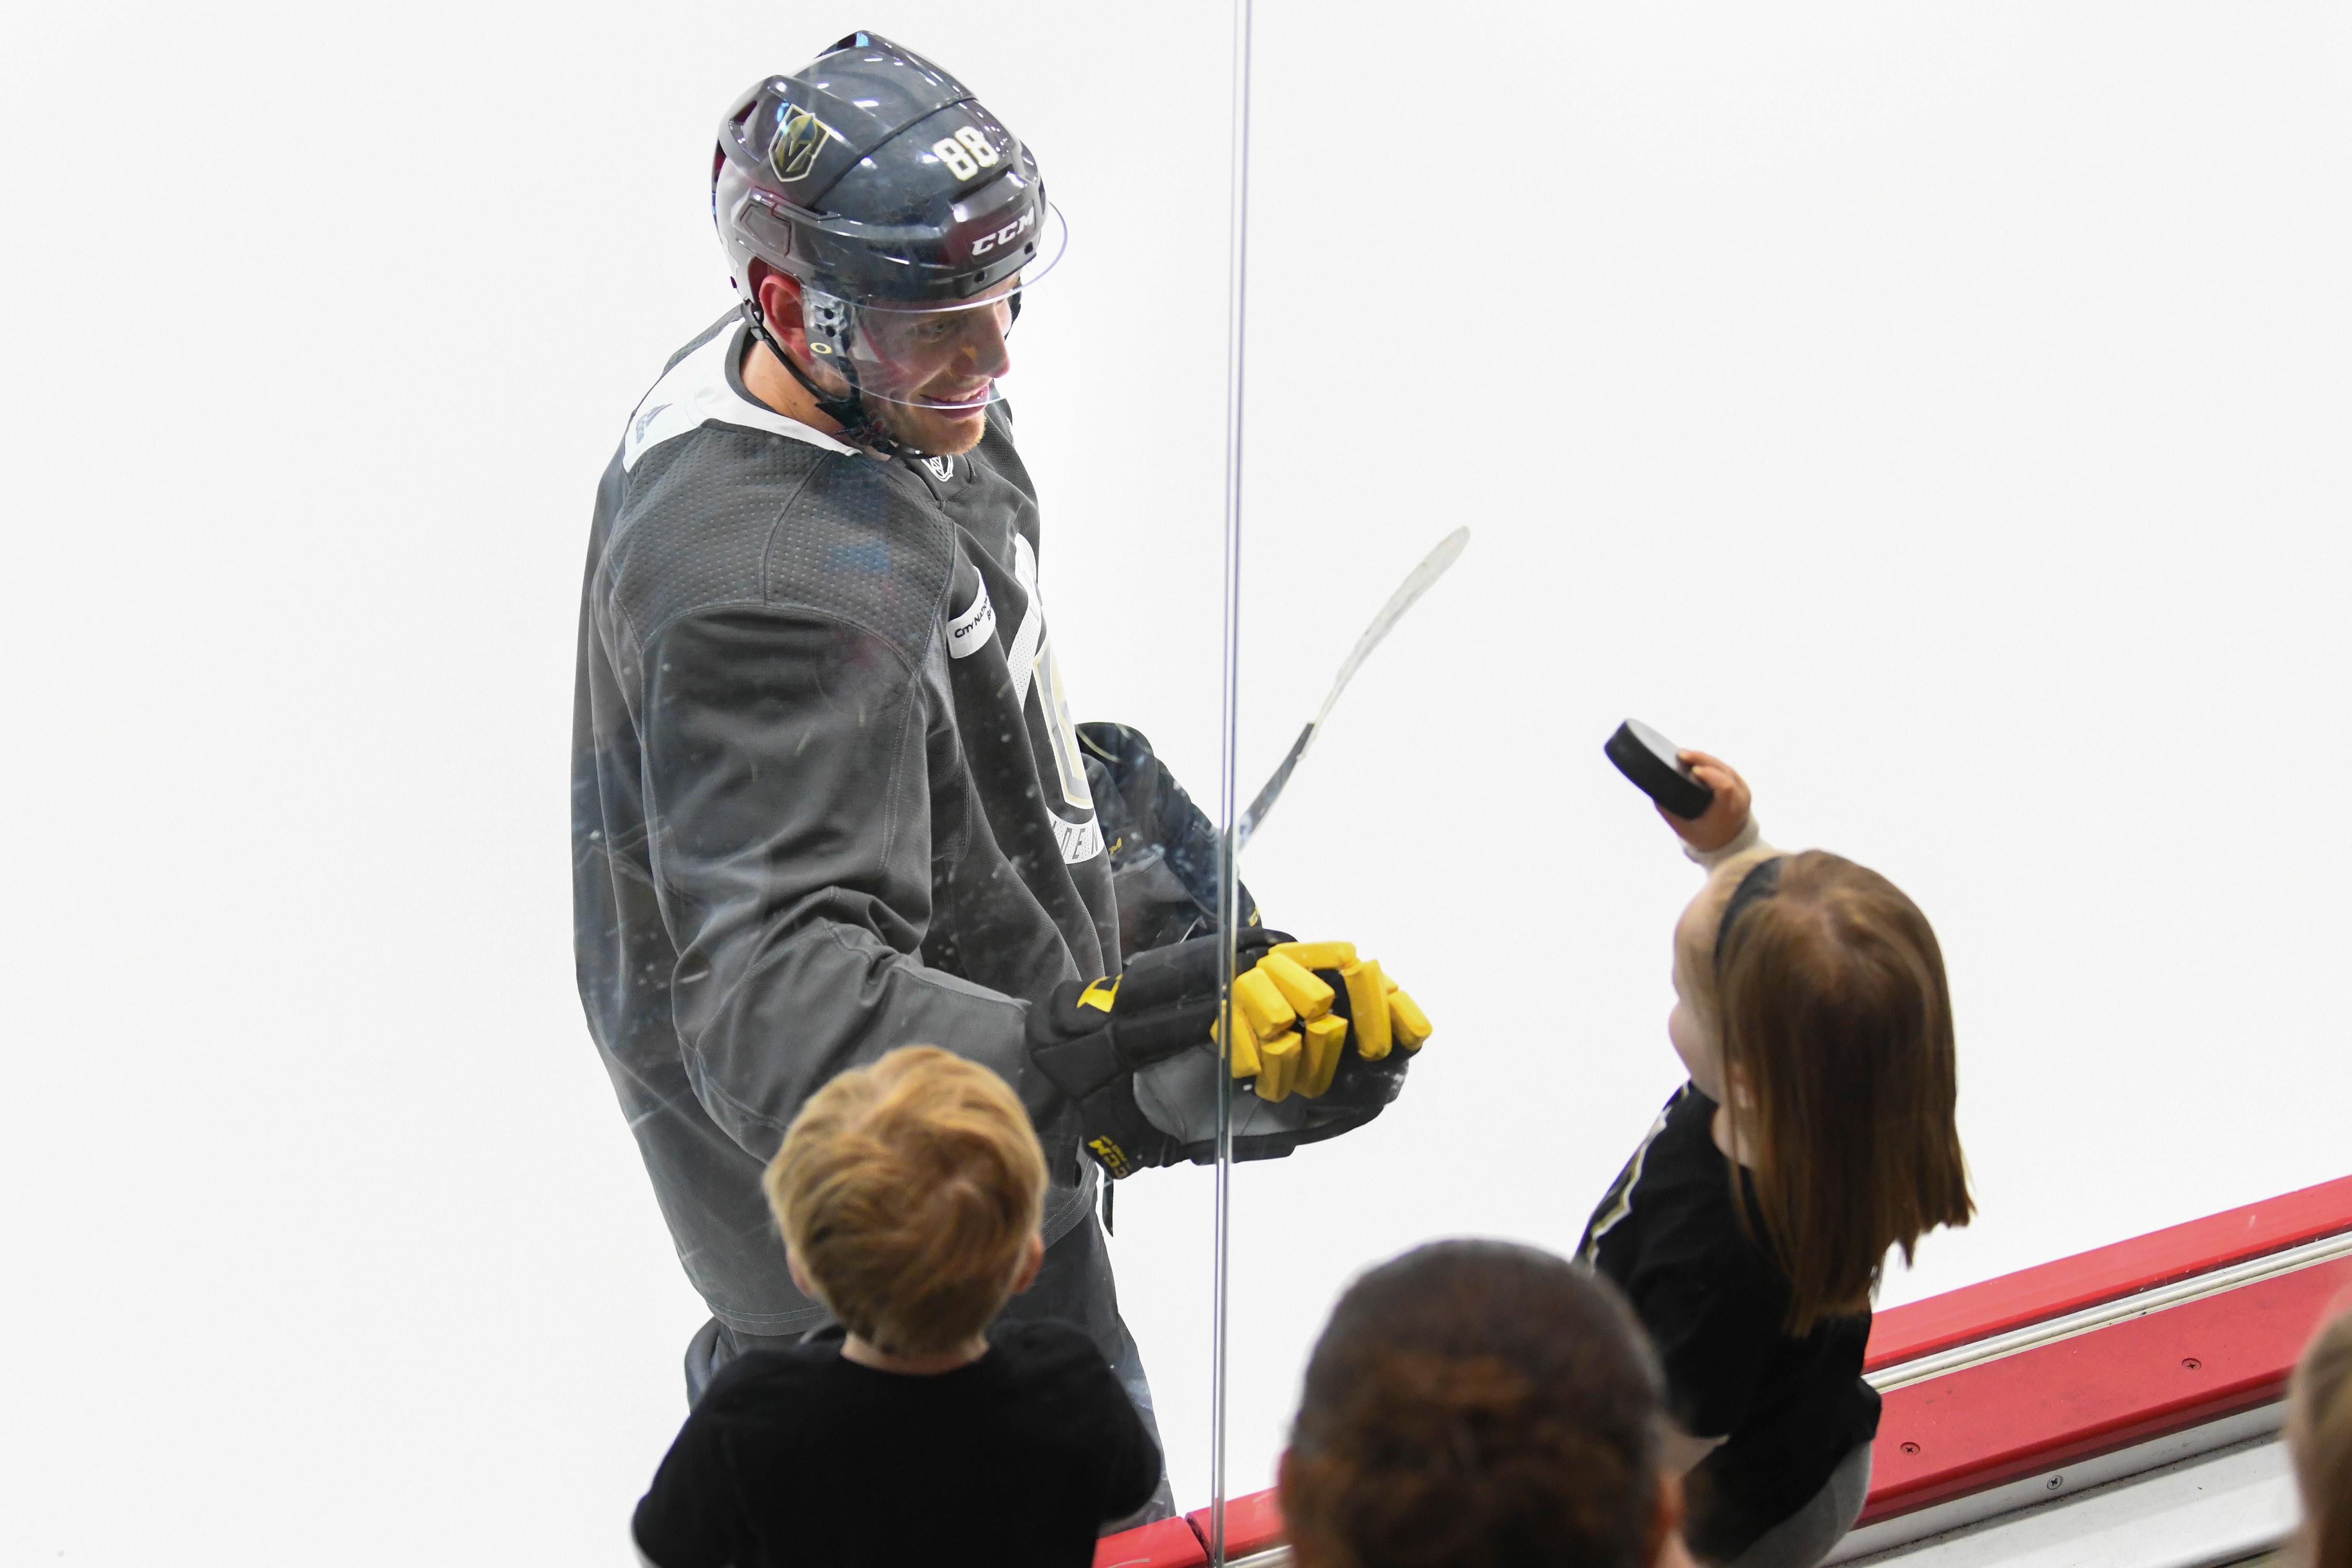 Vegas Golden Knights defenseman Nate Schmidt (88) taps the glass for Carson and Camille Wirick during the Golden Knights practice Friday, April 20, 2018, at City National Arena in Las Vegas. CREDIT: Sam Morris/Las Vegas News Bureau